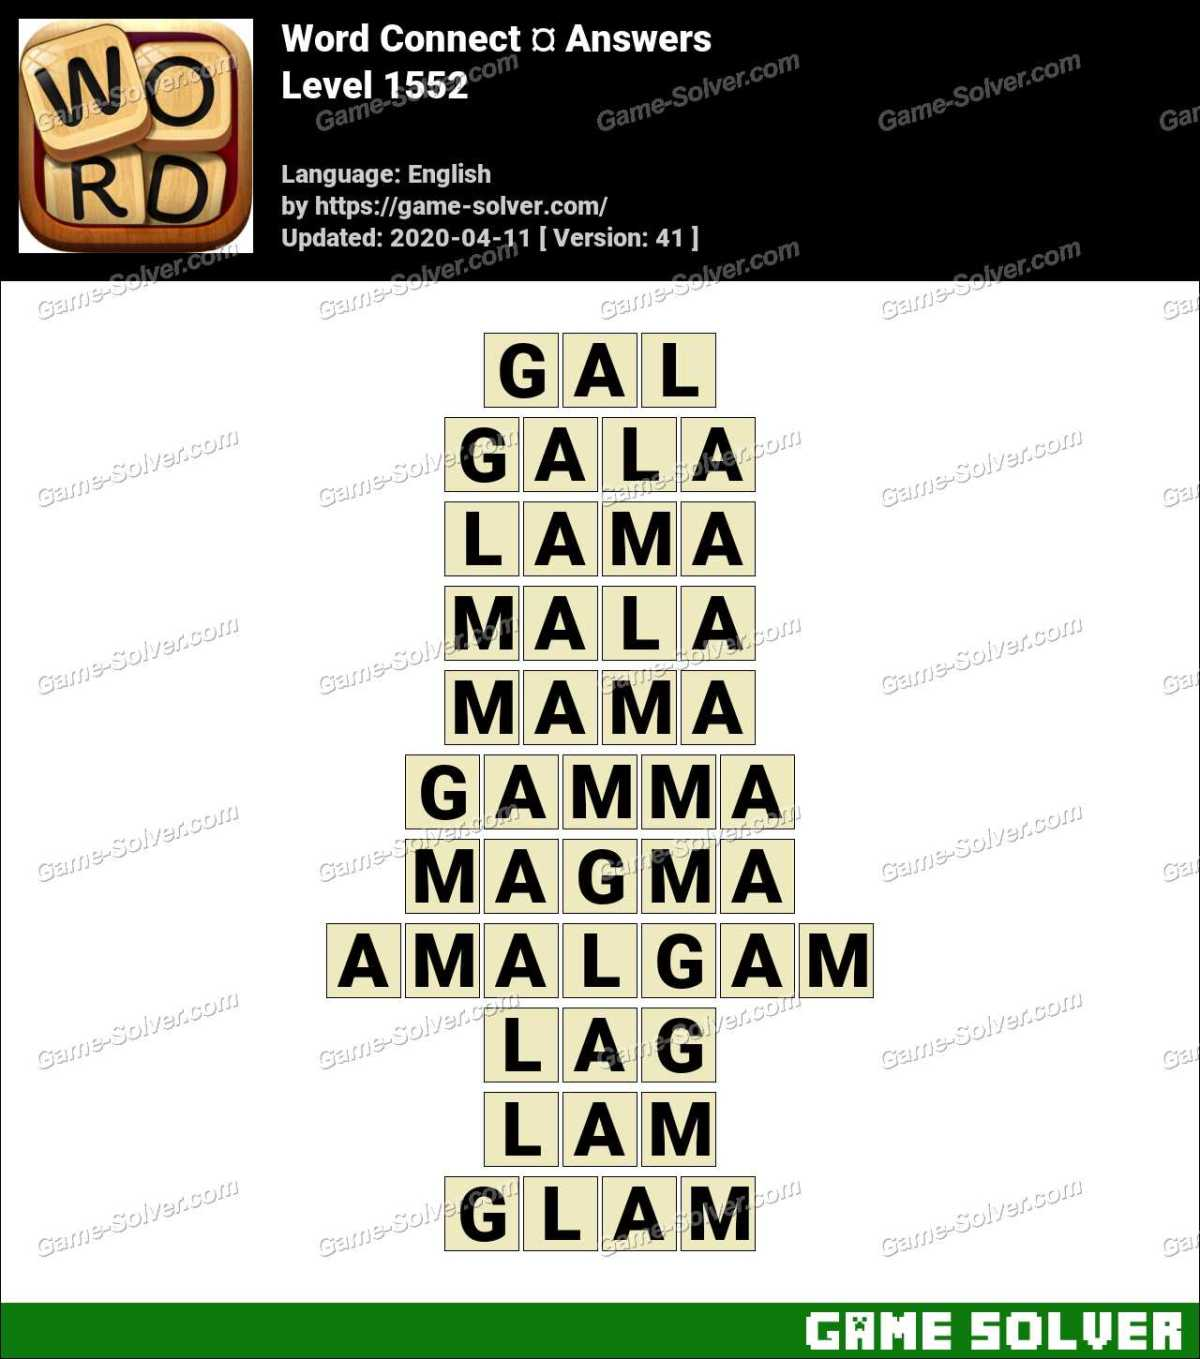 Word Connect Level 1552 Answers